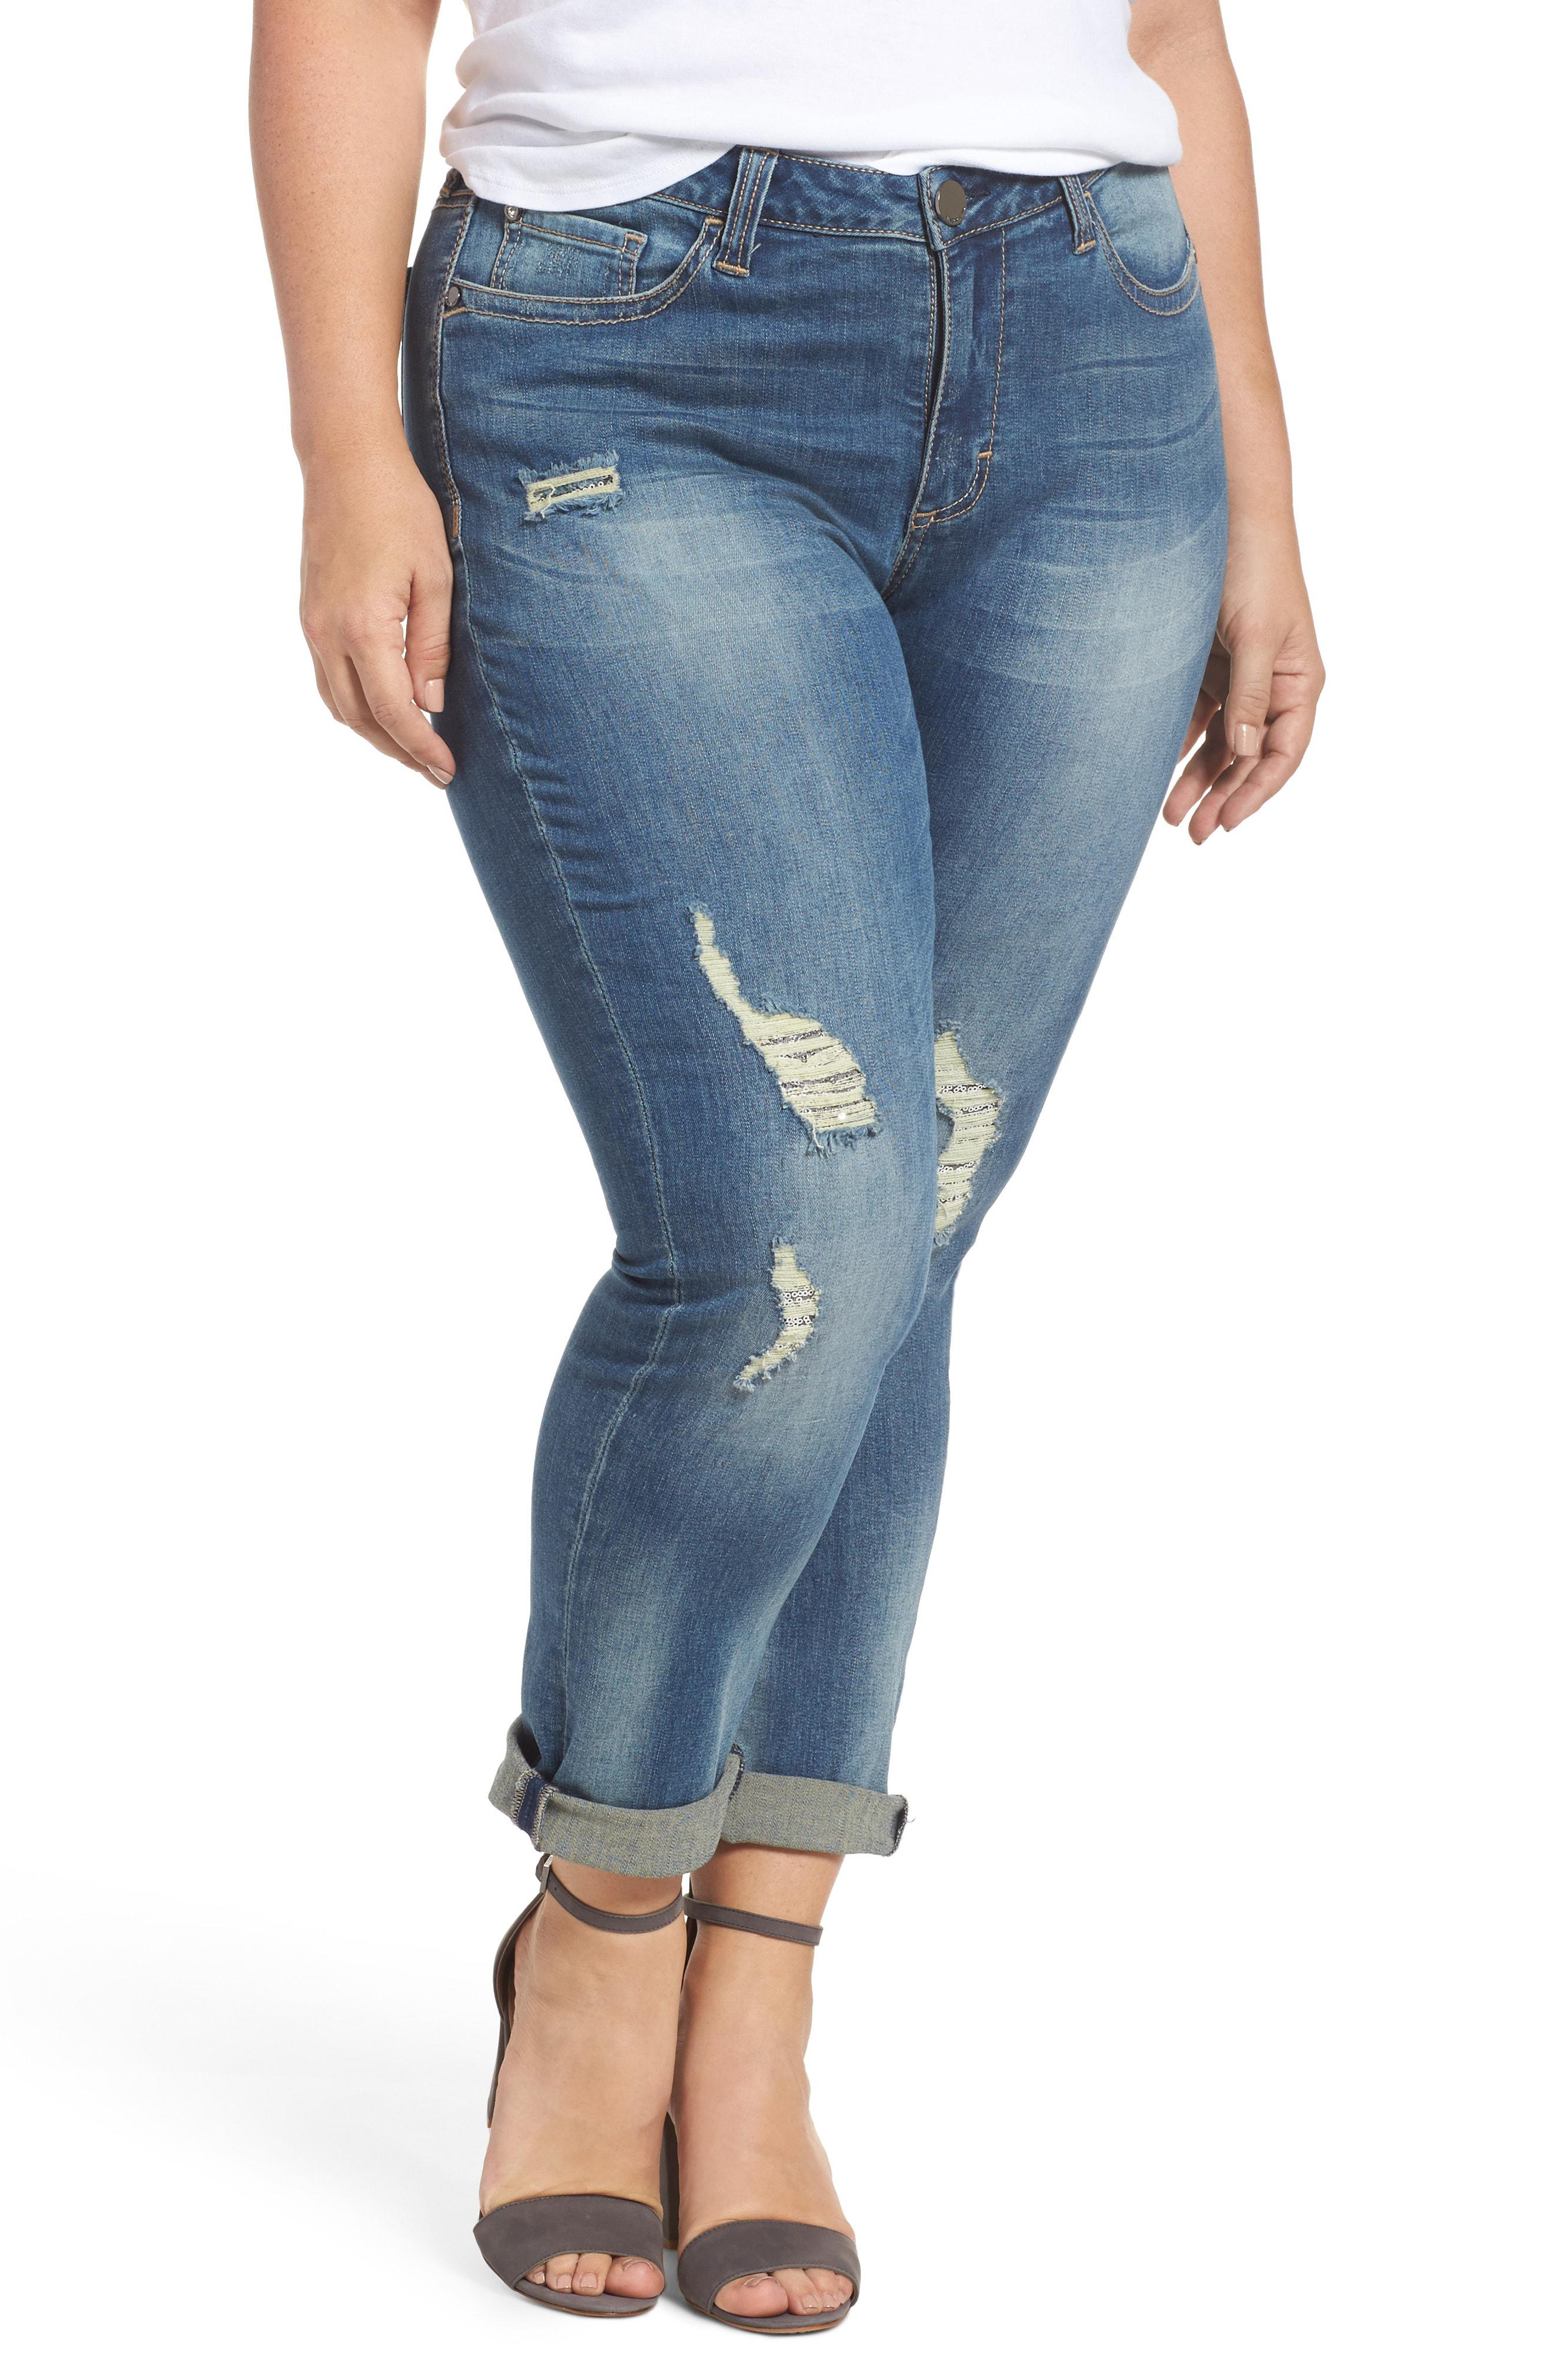 562714dc02e Lyst - Seven7 Ripped   Embellished Skinny Jeans in Blue